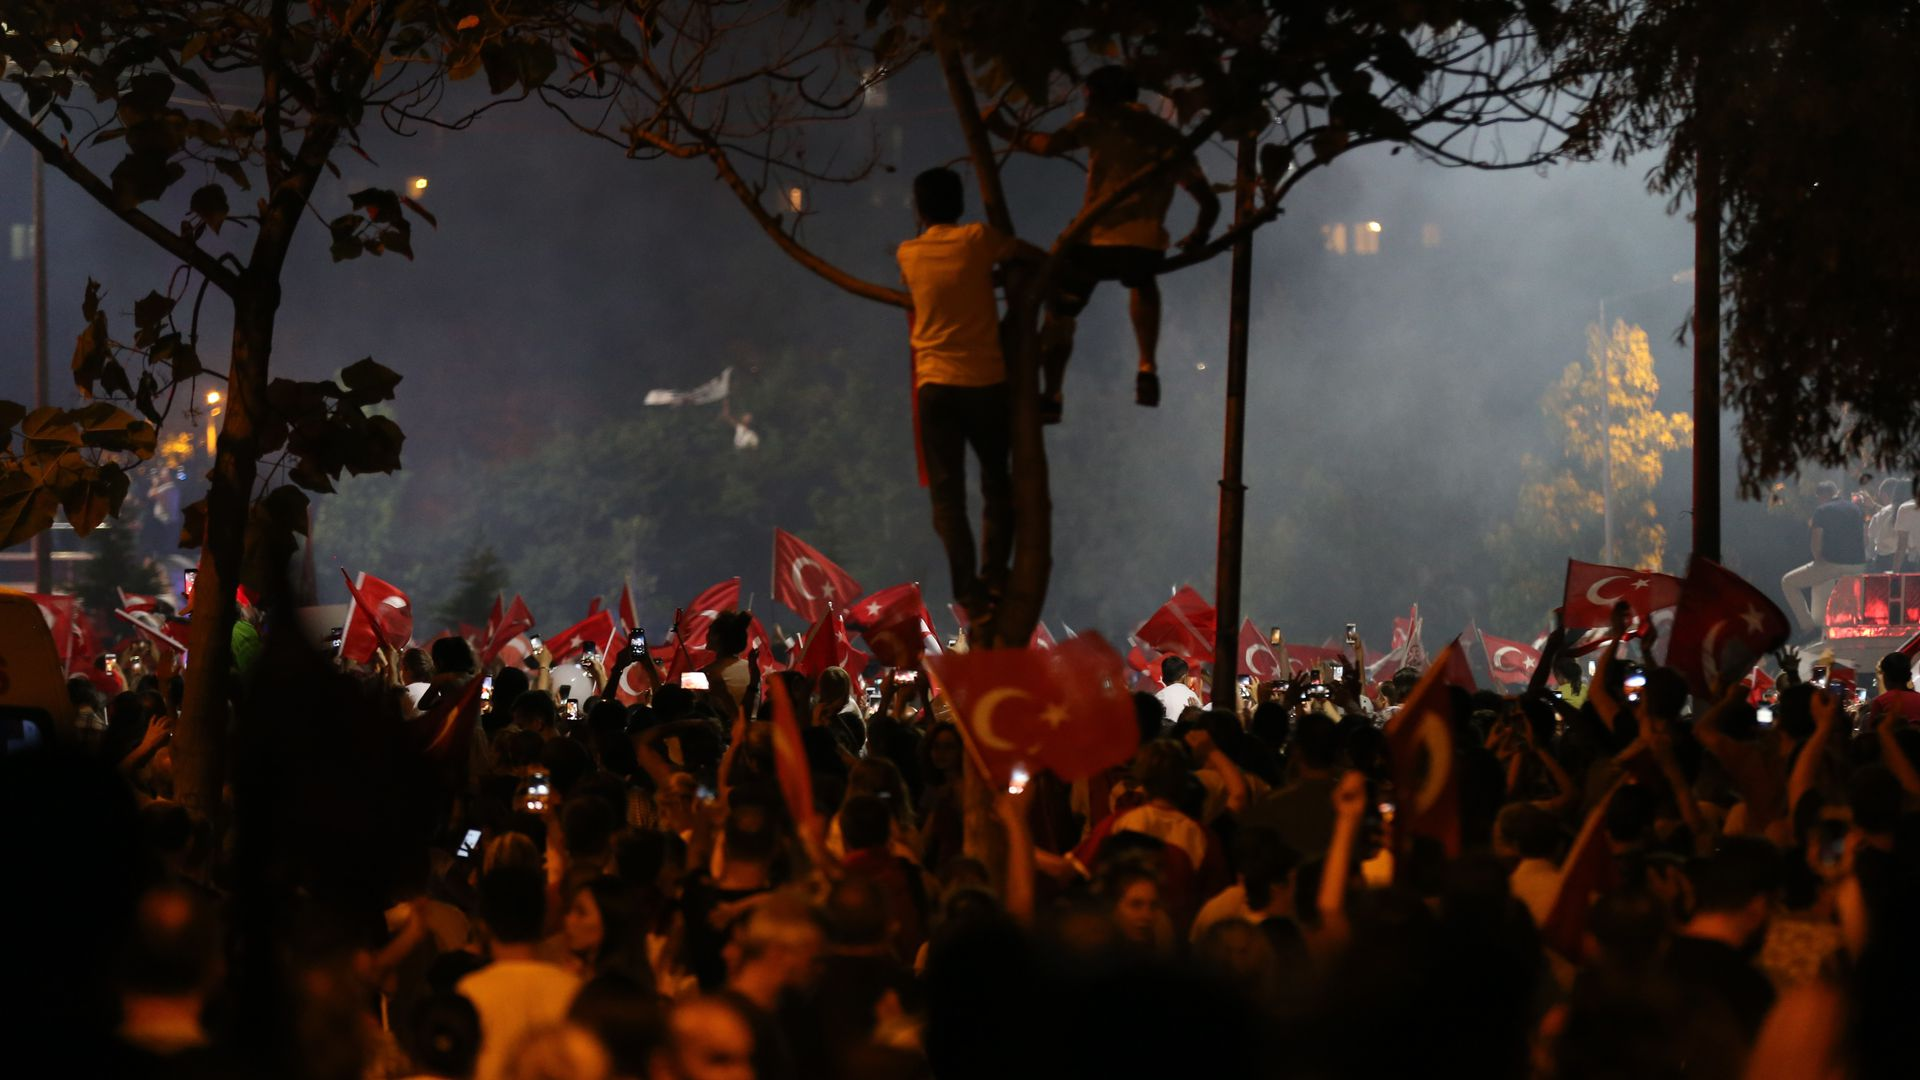 Istanbul election: Erdogan looks vulnerable after shock defeat